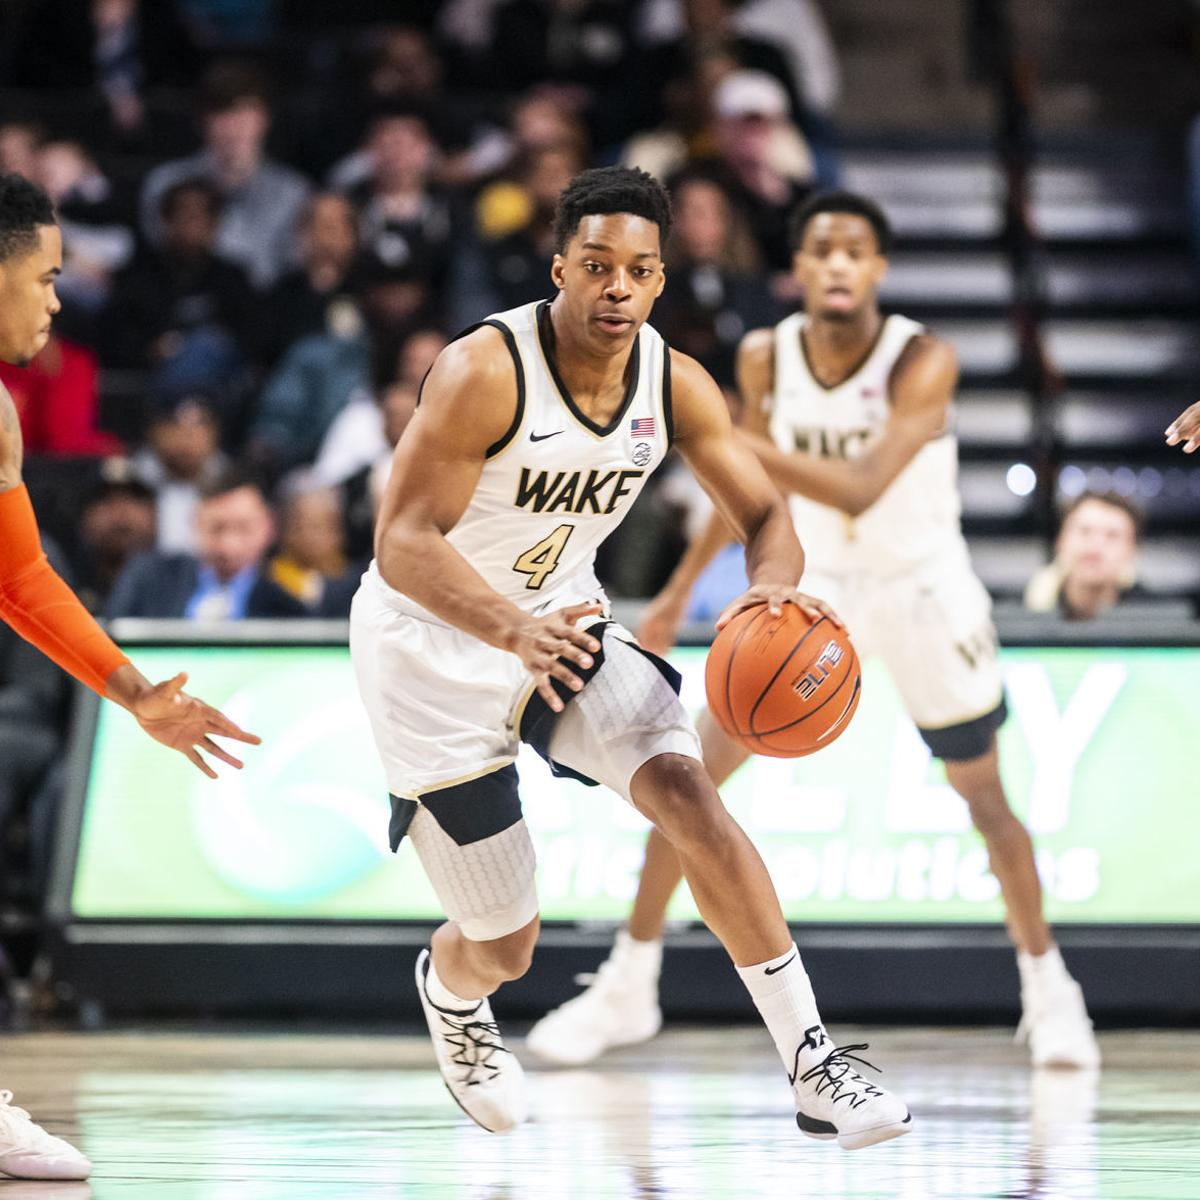 Jahcobi Neath enters transfer portal, leaves open possibility to return to  Wake Forest | WFU | journalnow.com